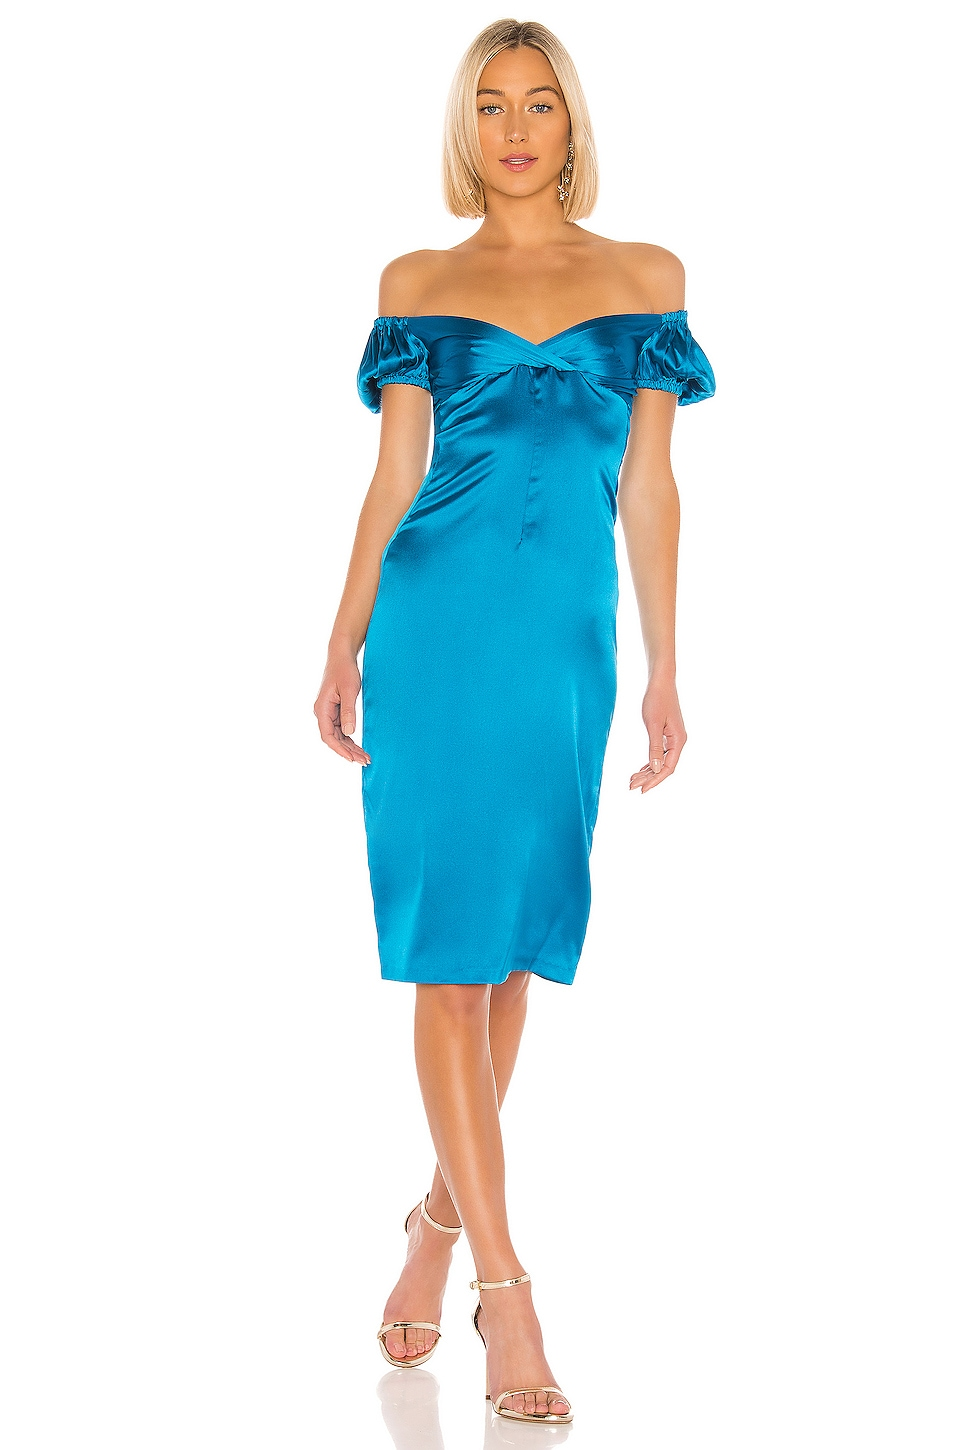 Alexis Cadiz Dress in Capri Blue